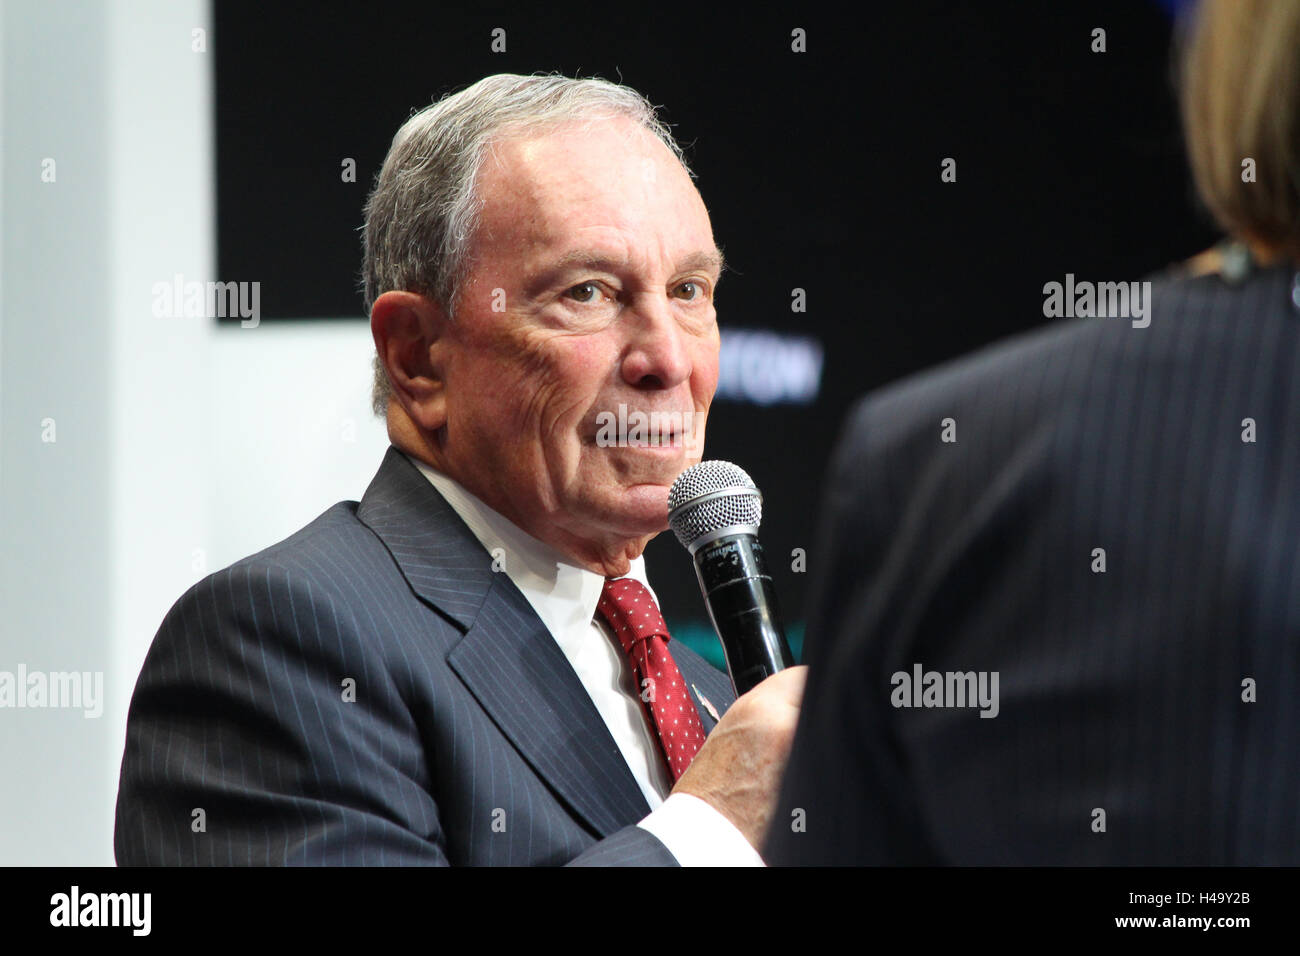 Paris, France. 14th October, 2016. Michael Bloomberg, CEO of Bloomberg L.P., delivers a speech to technology entrepreneurs - Stock Image